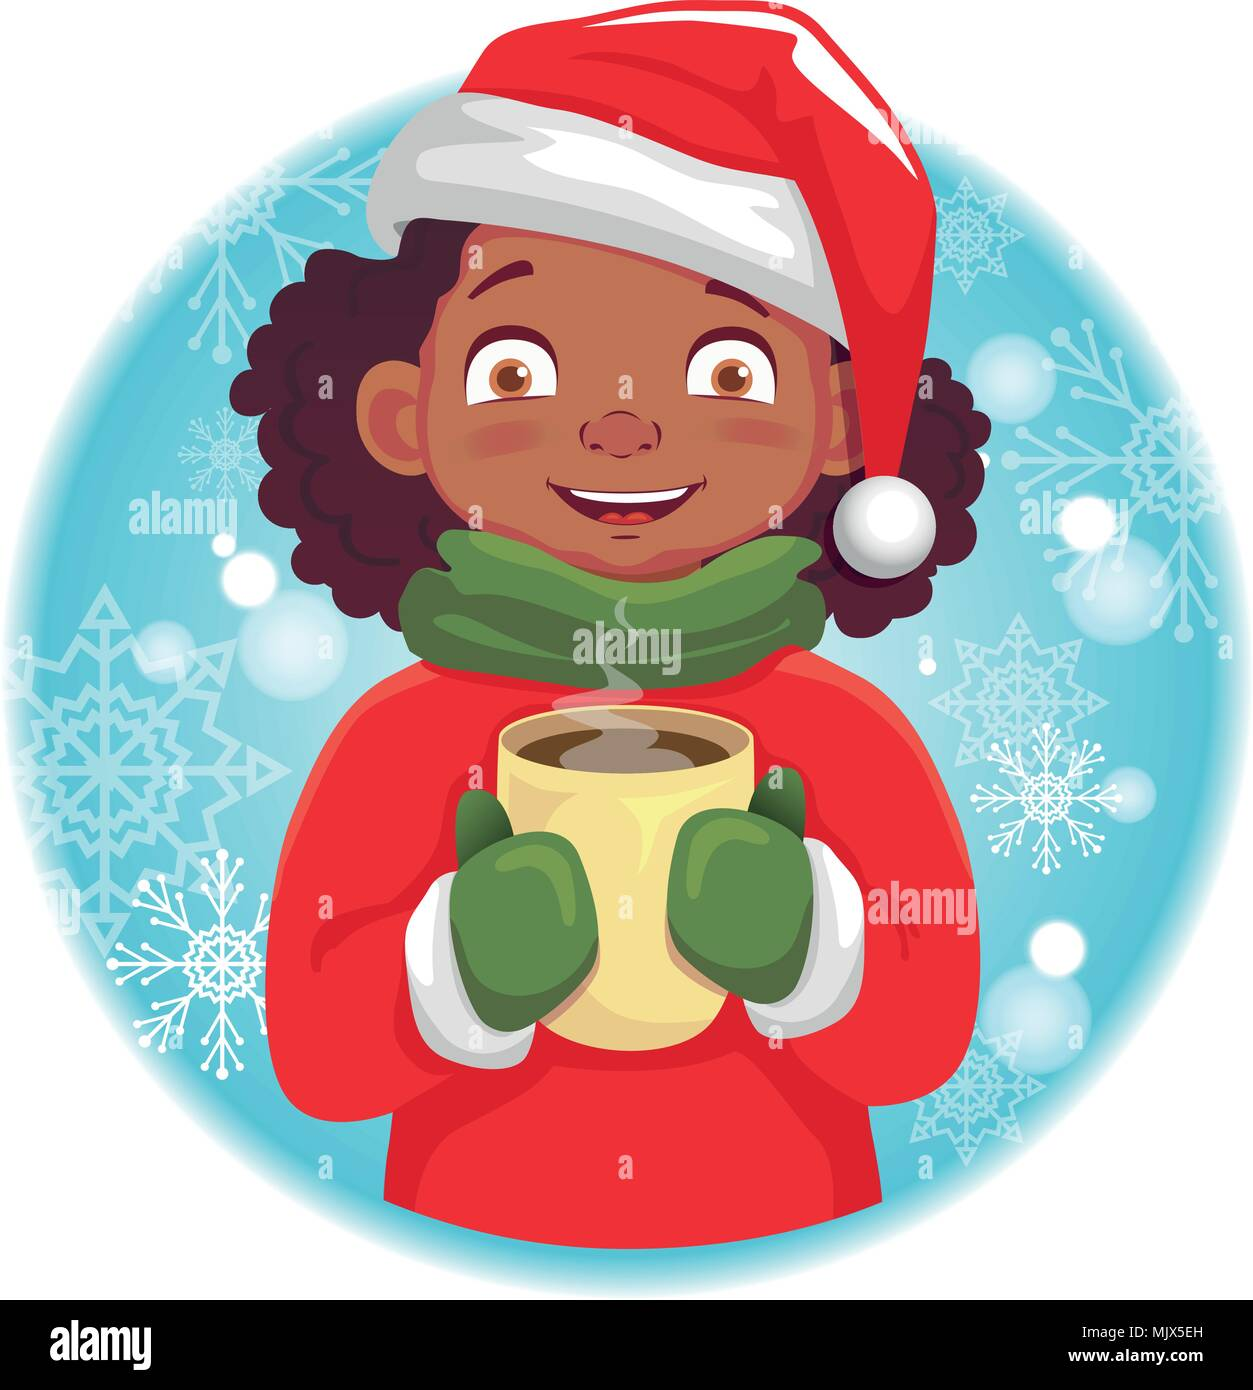 Afro-American girl holding a hot cup - Stock Image